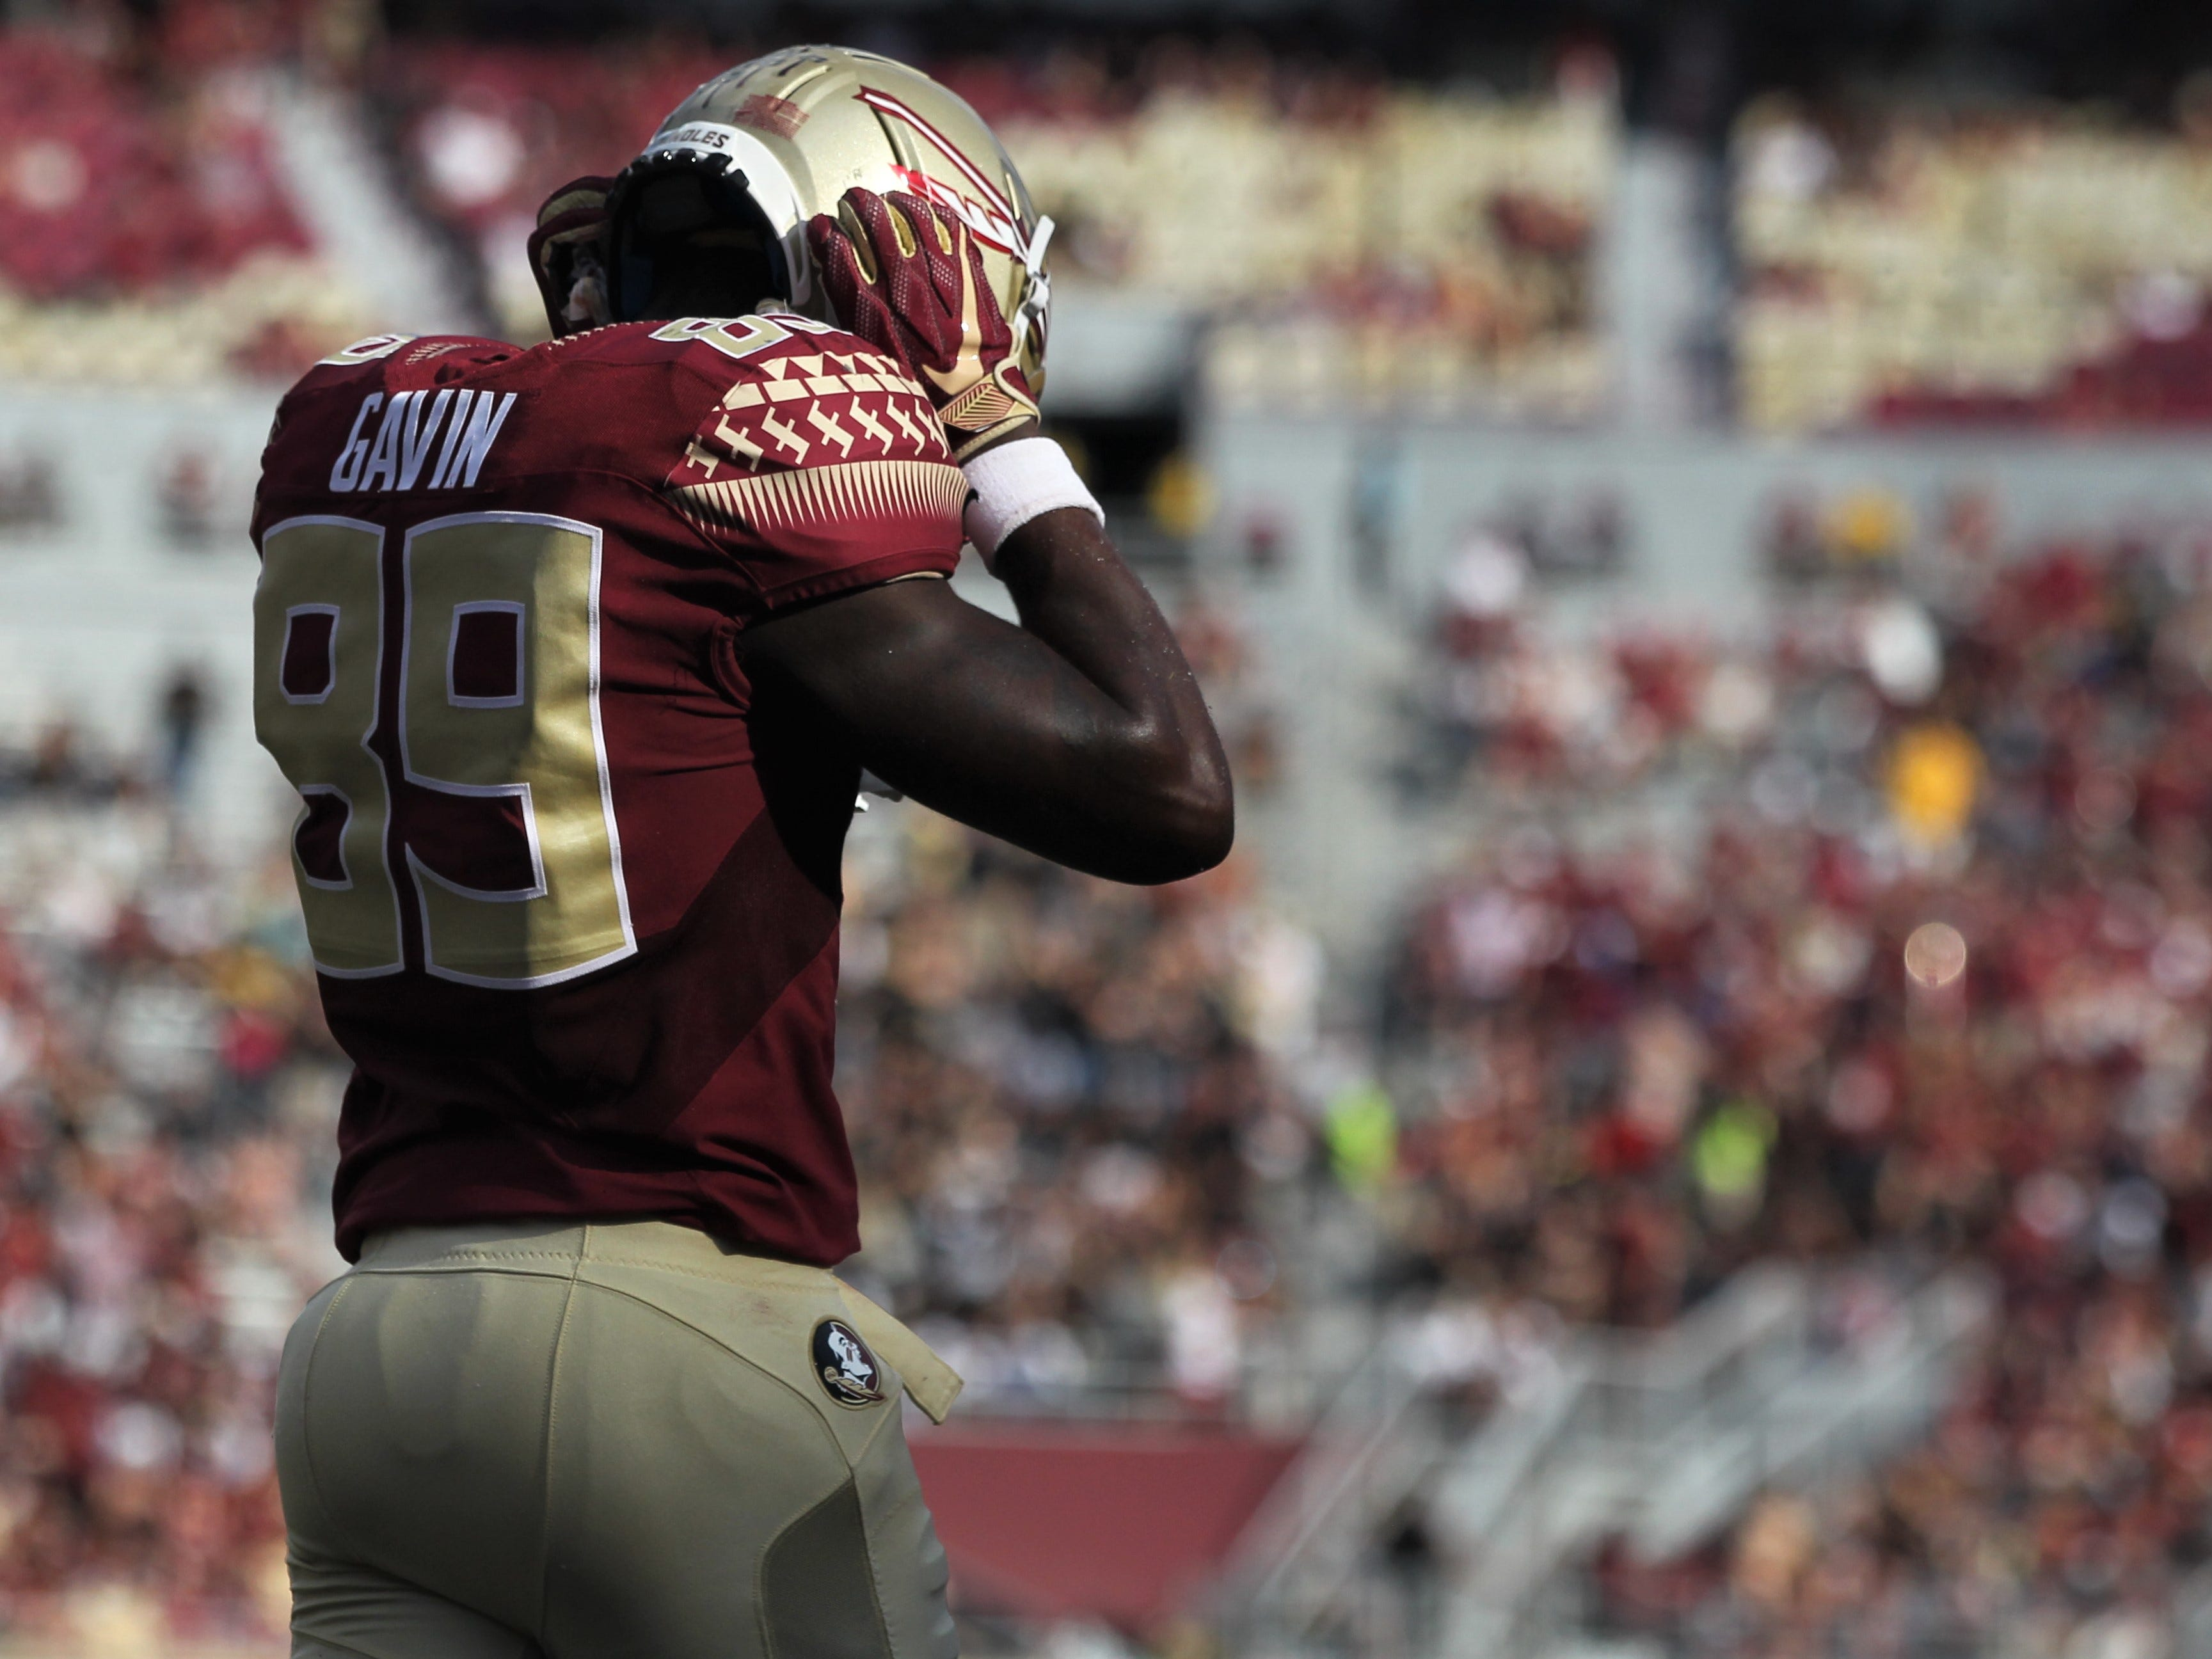 Florida State receiver Keith Gavin reacts to fumbling just before the goal line after a long catch and run against Wake Forest during a game at Doak Campbell Stadium on Saturday, Oct. 20, 2018.